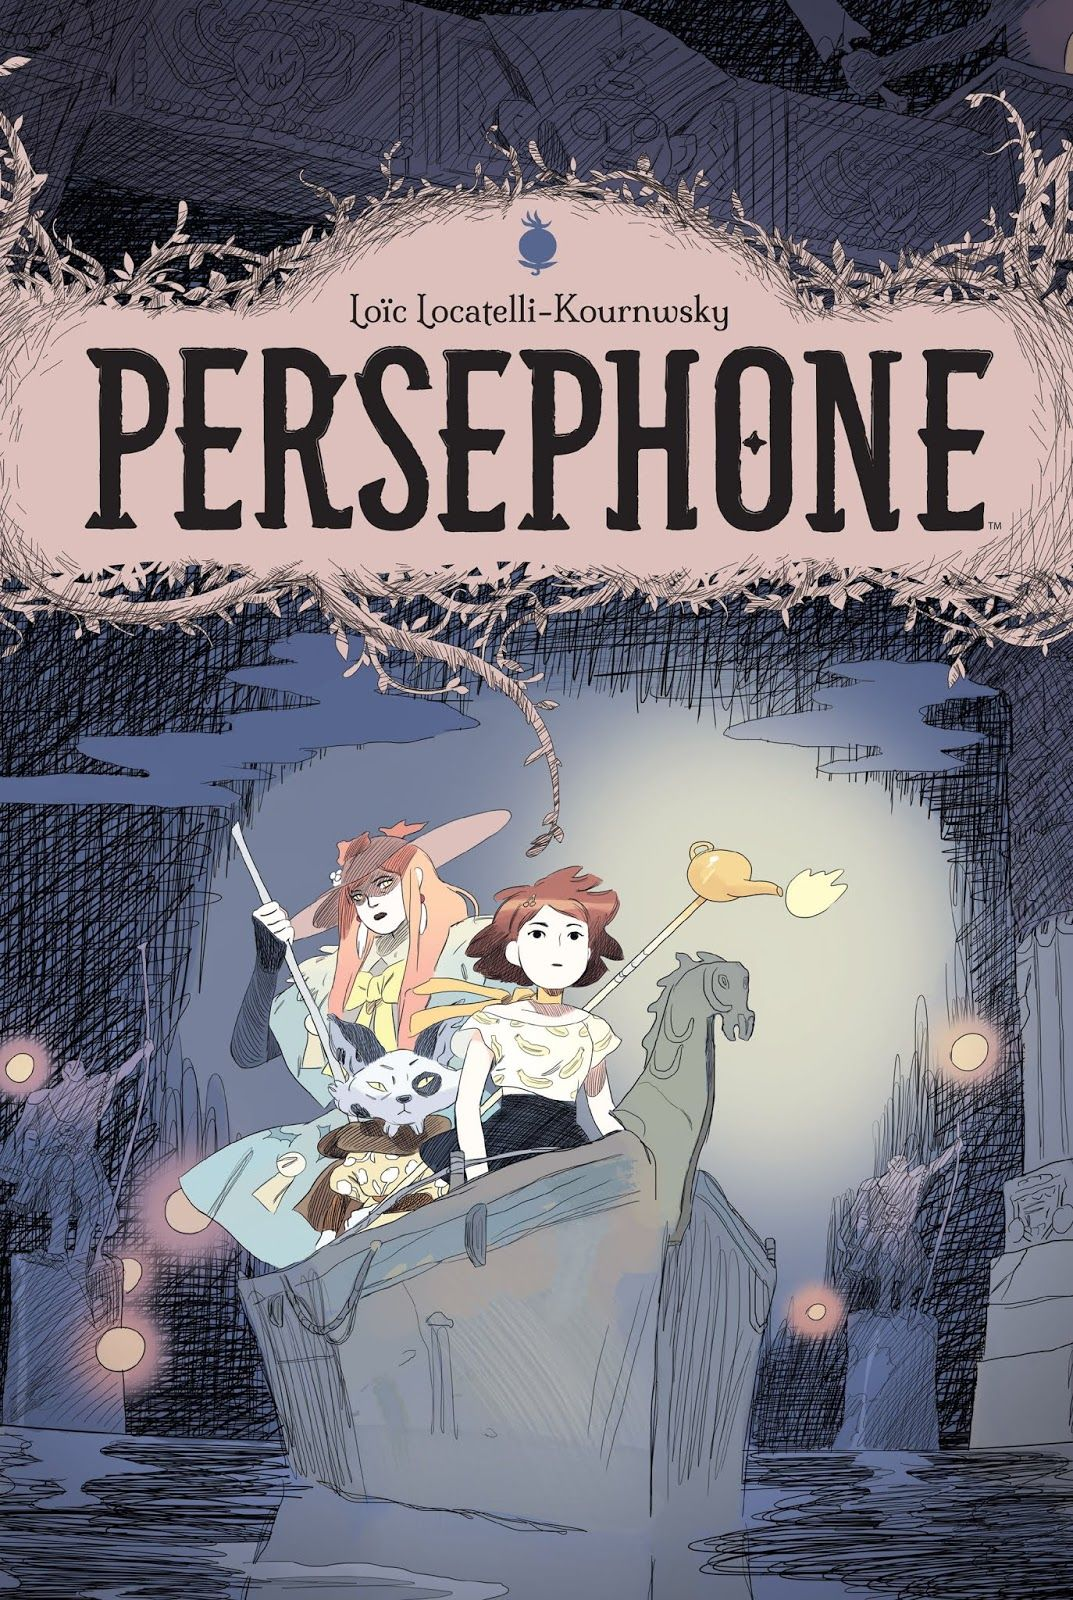 Arte Read Online Persephone Tpb Read Persephone Tpb Comic Online In High Quality